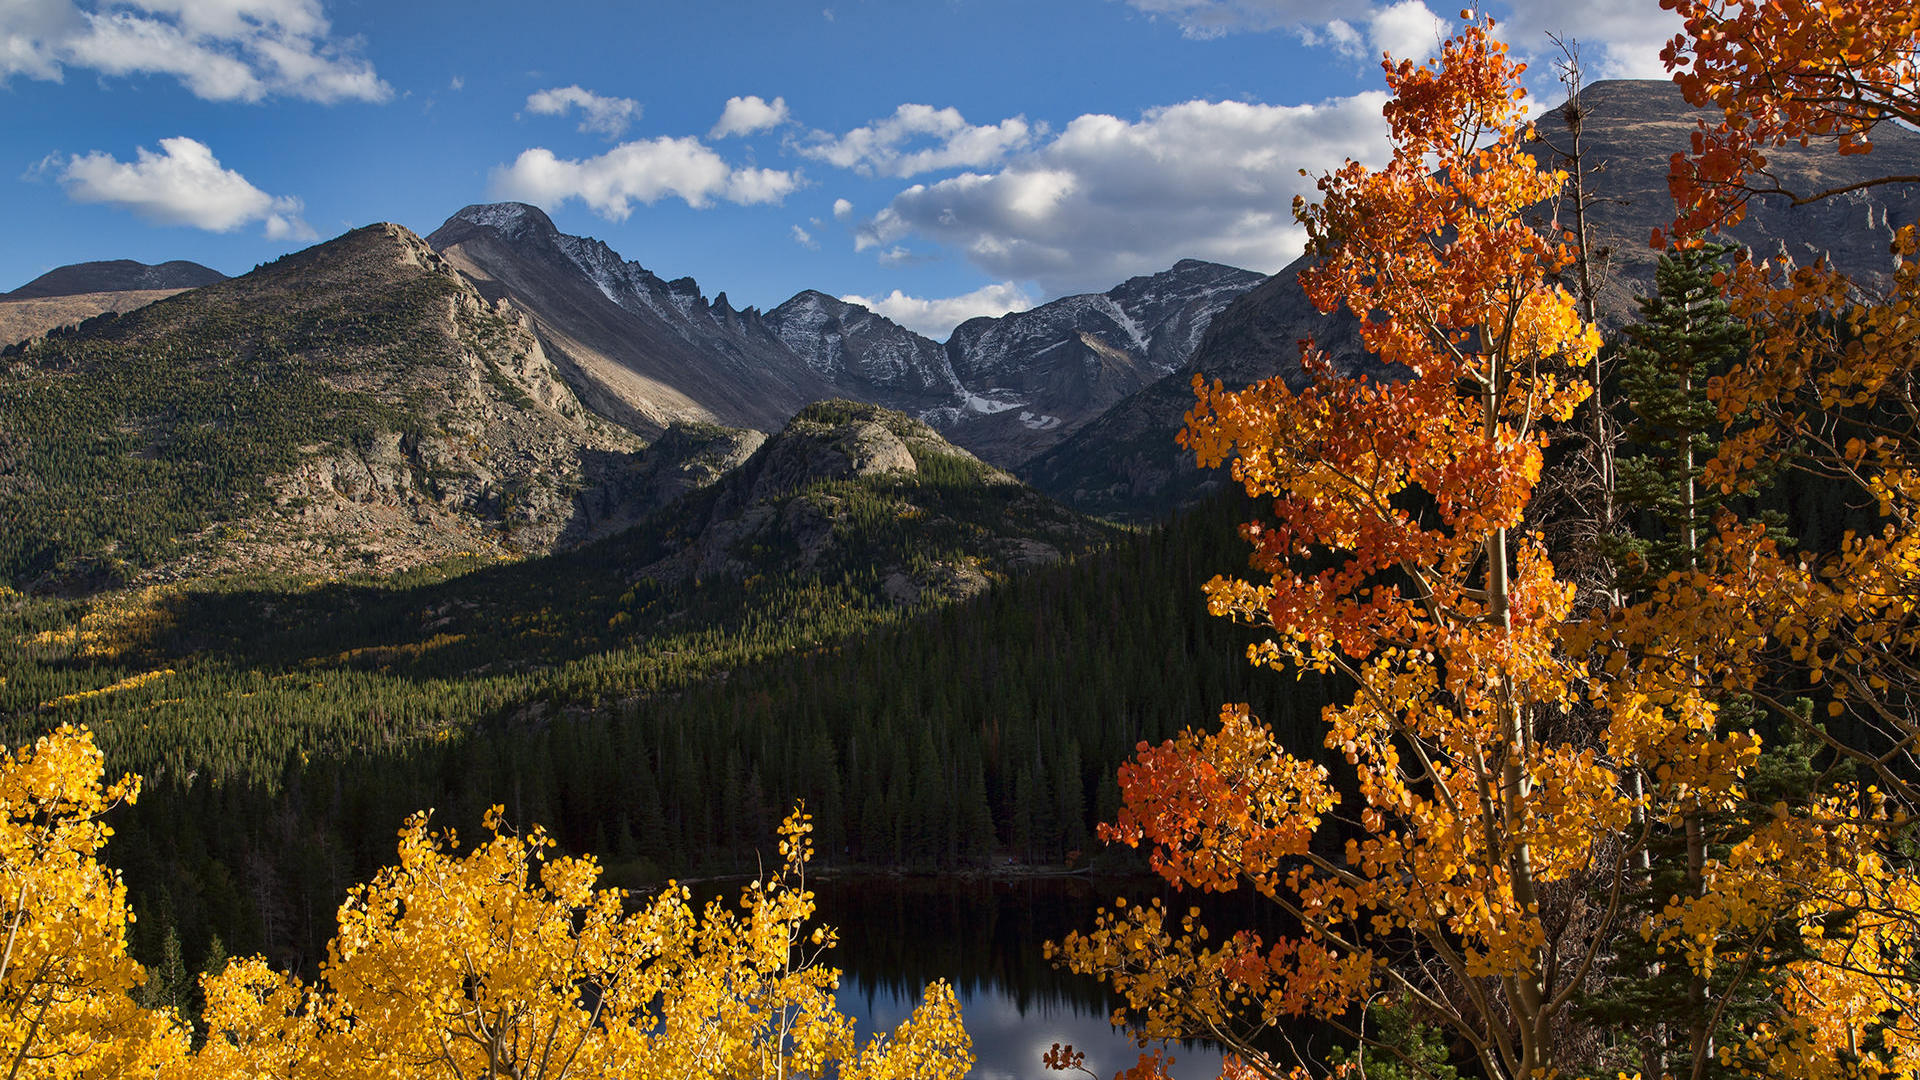 Autumnal trees with mountains in the distance